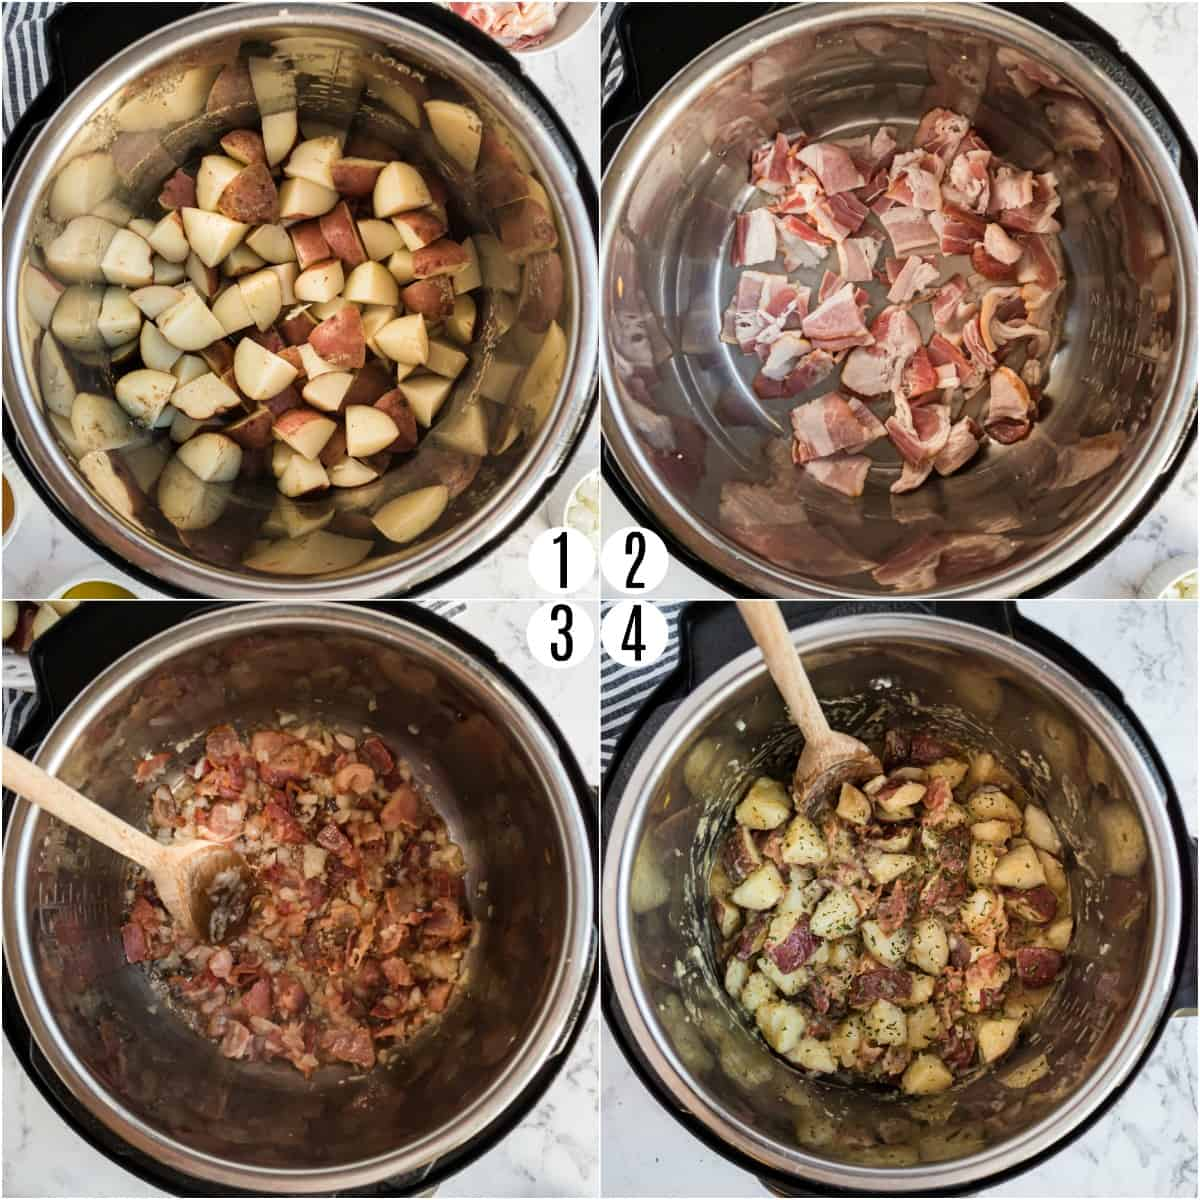 Step by step photos showing how to make Instant Pot German Potato Salad.